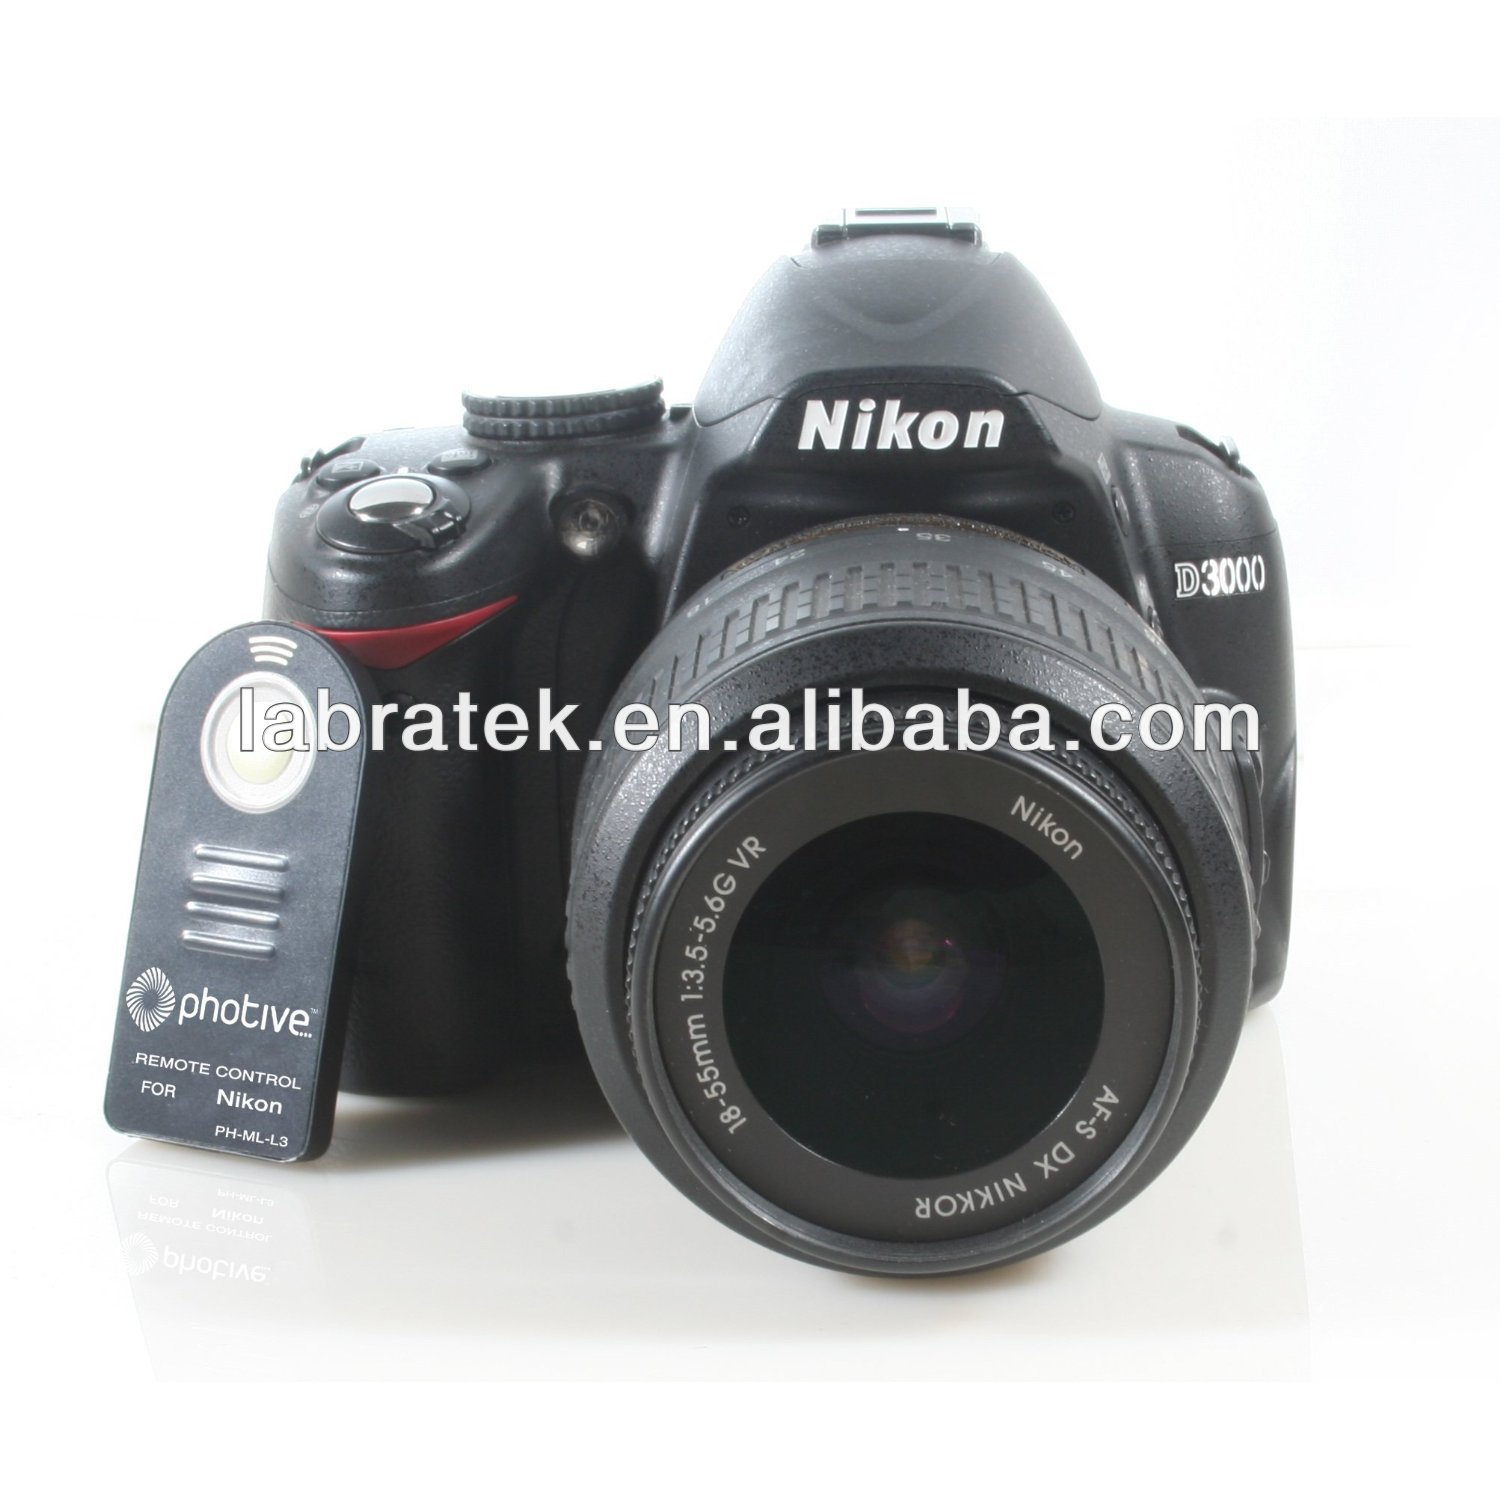 Nikon Ml L3 Wholesale Suppliers Alibaba Infra Red Remote Control For Camera